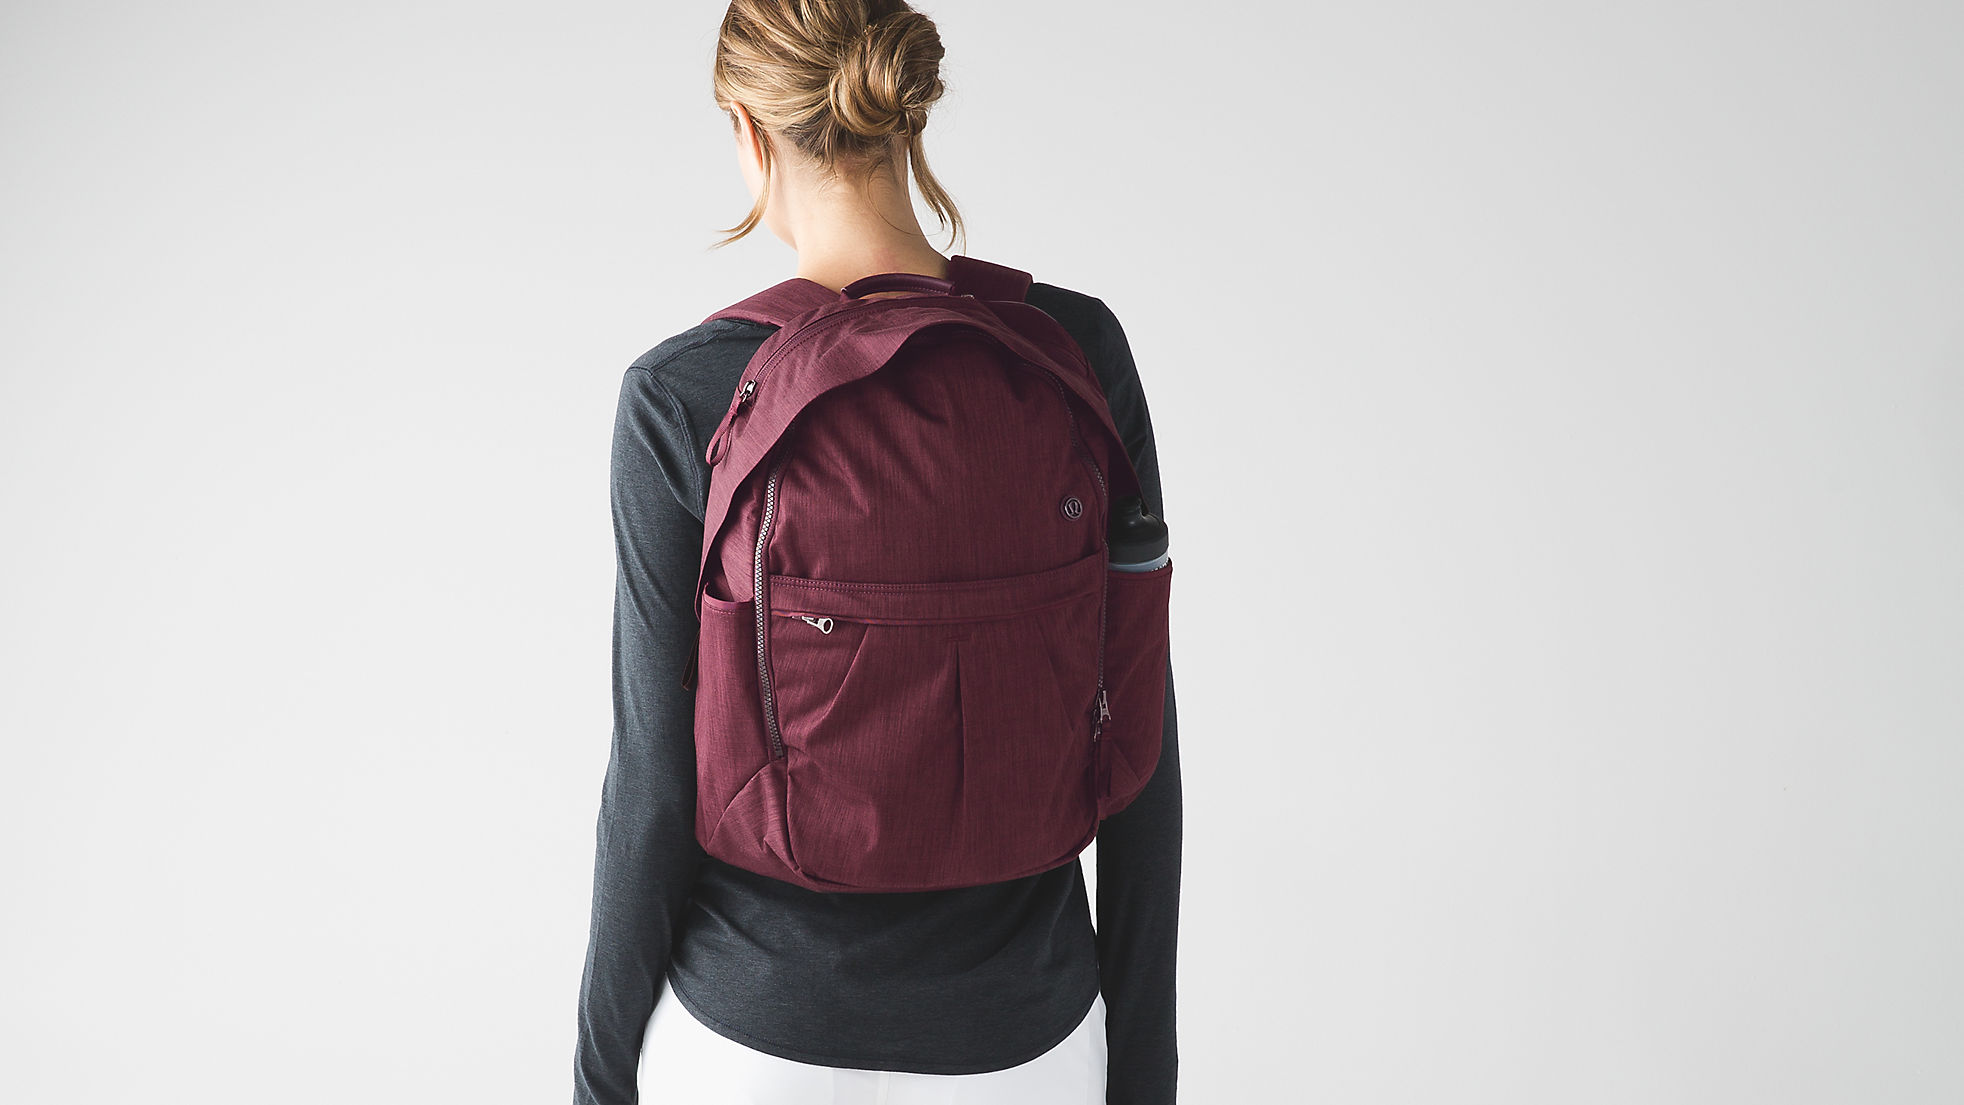 bed397f64cca 15 Amazing Gym Bags for All Your Healthy Essentials